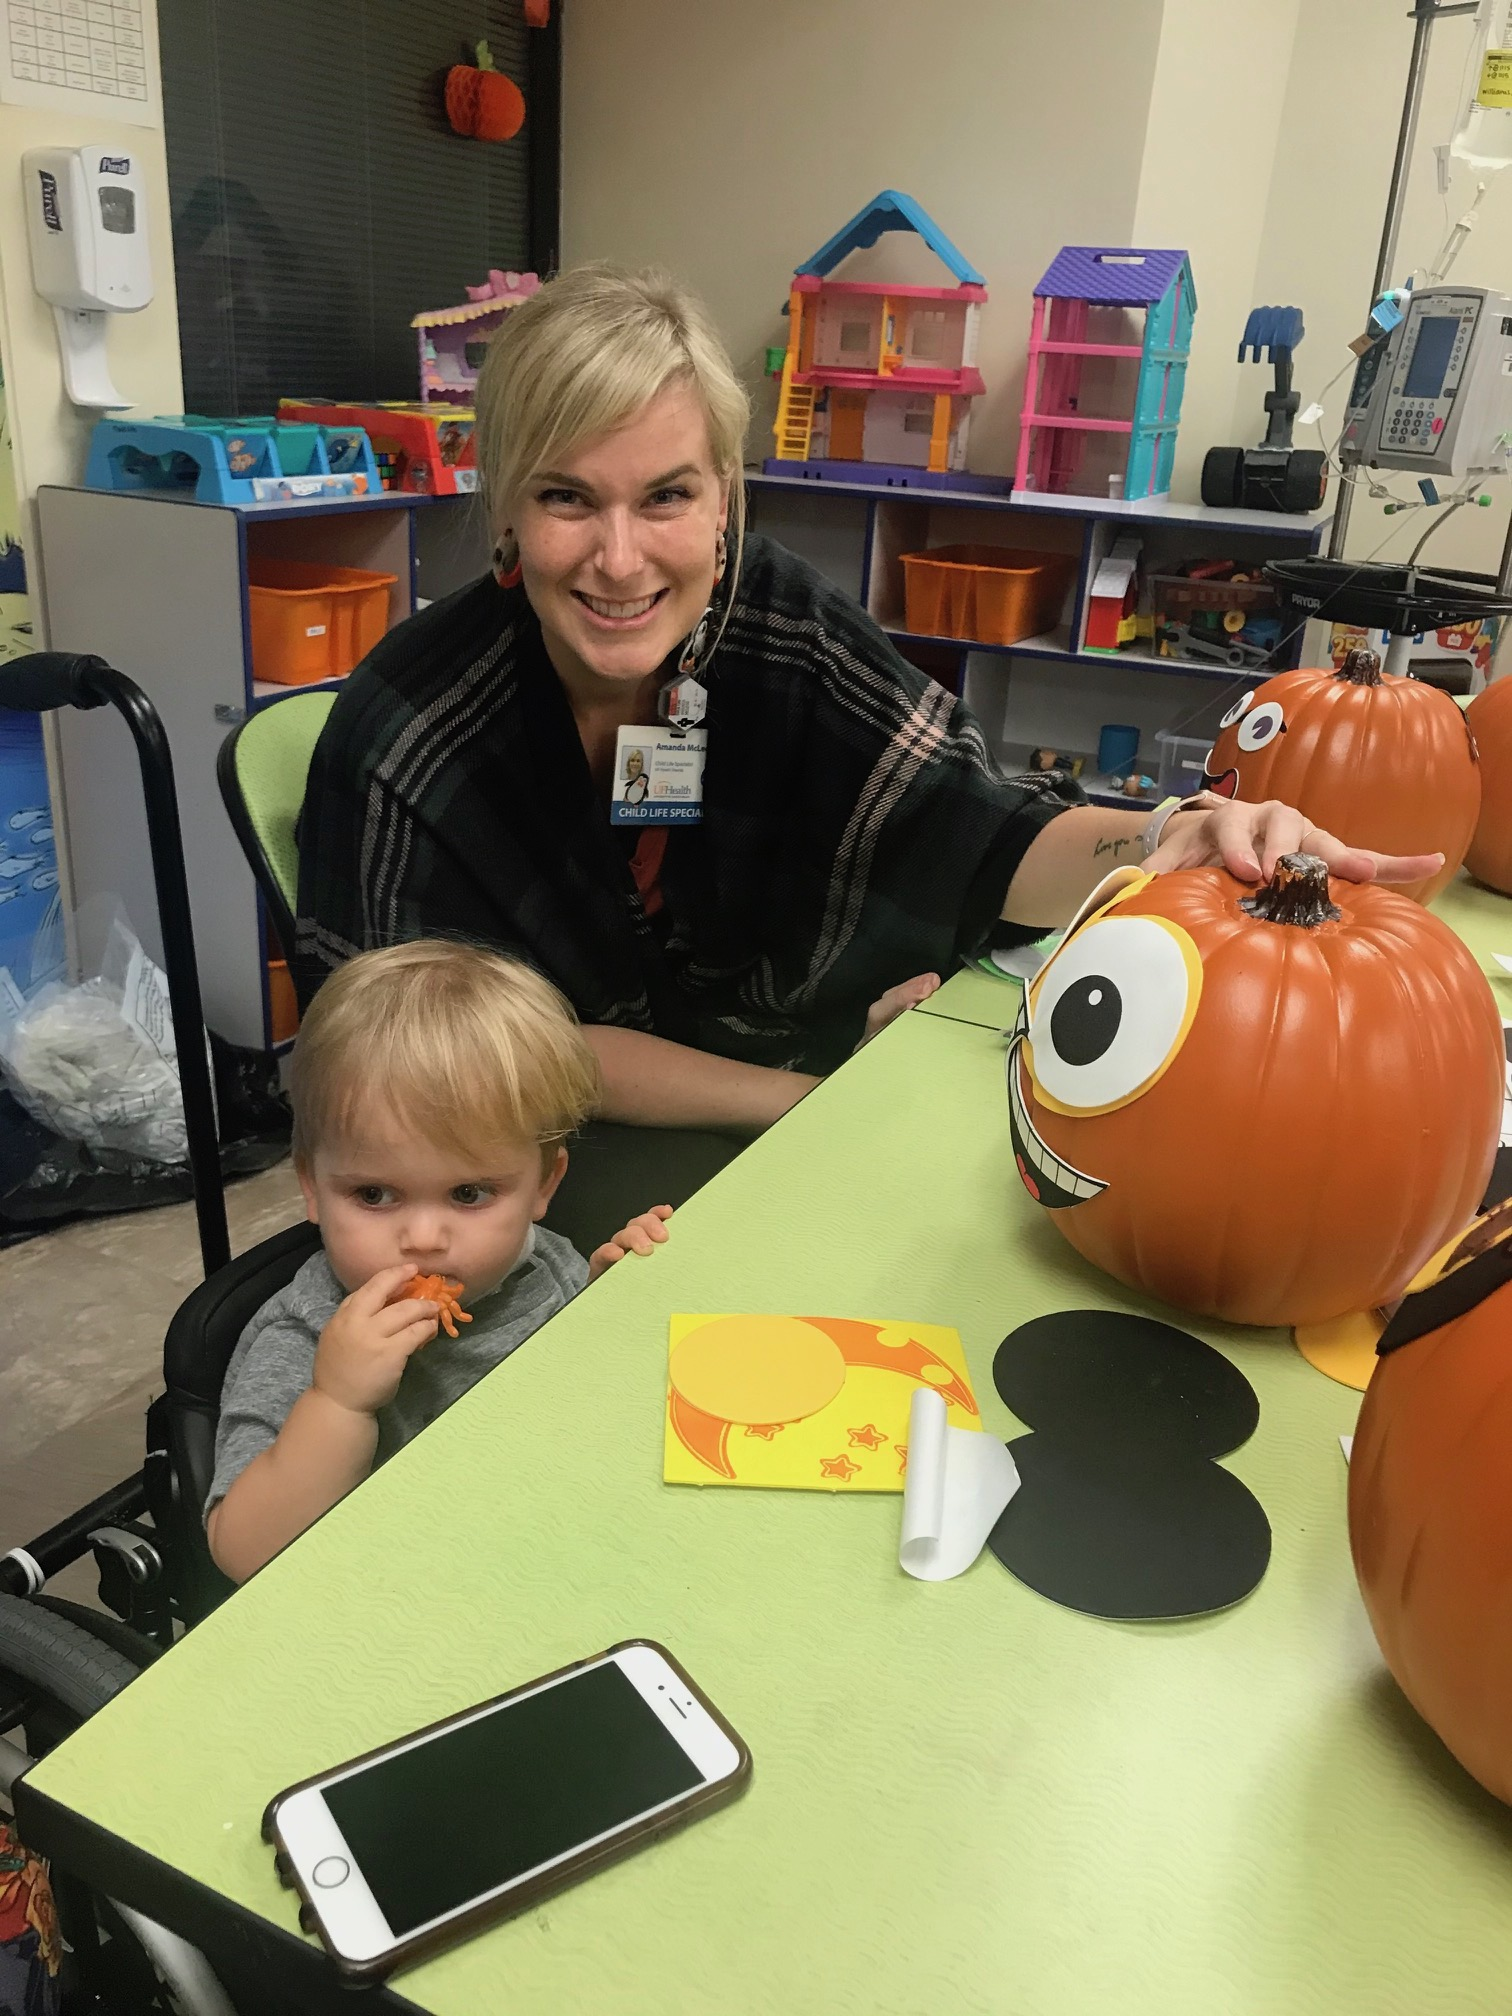 Child life staff member decorating a pumpkin with a pediatric patient